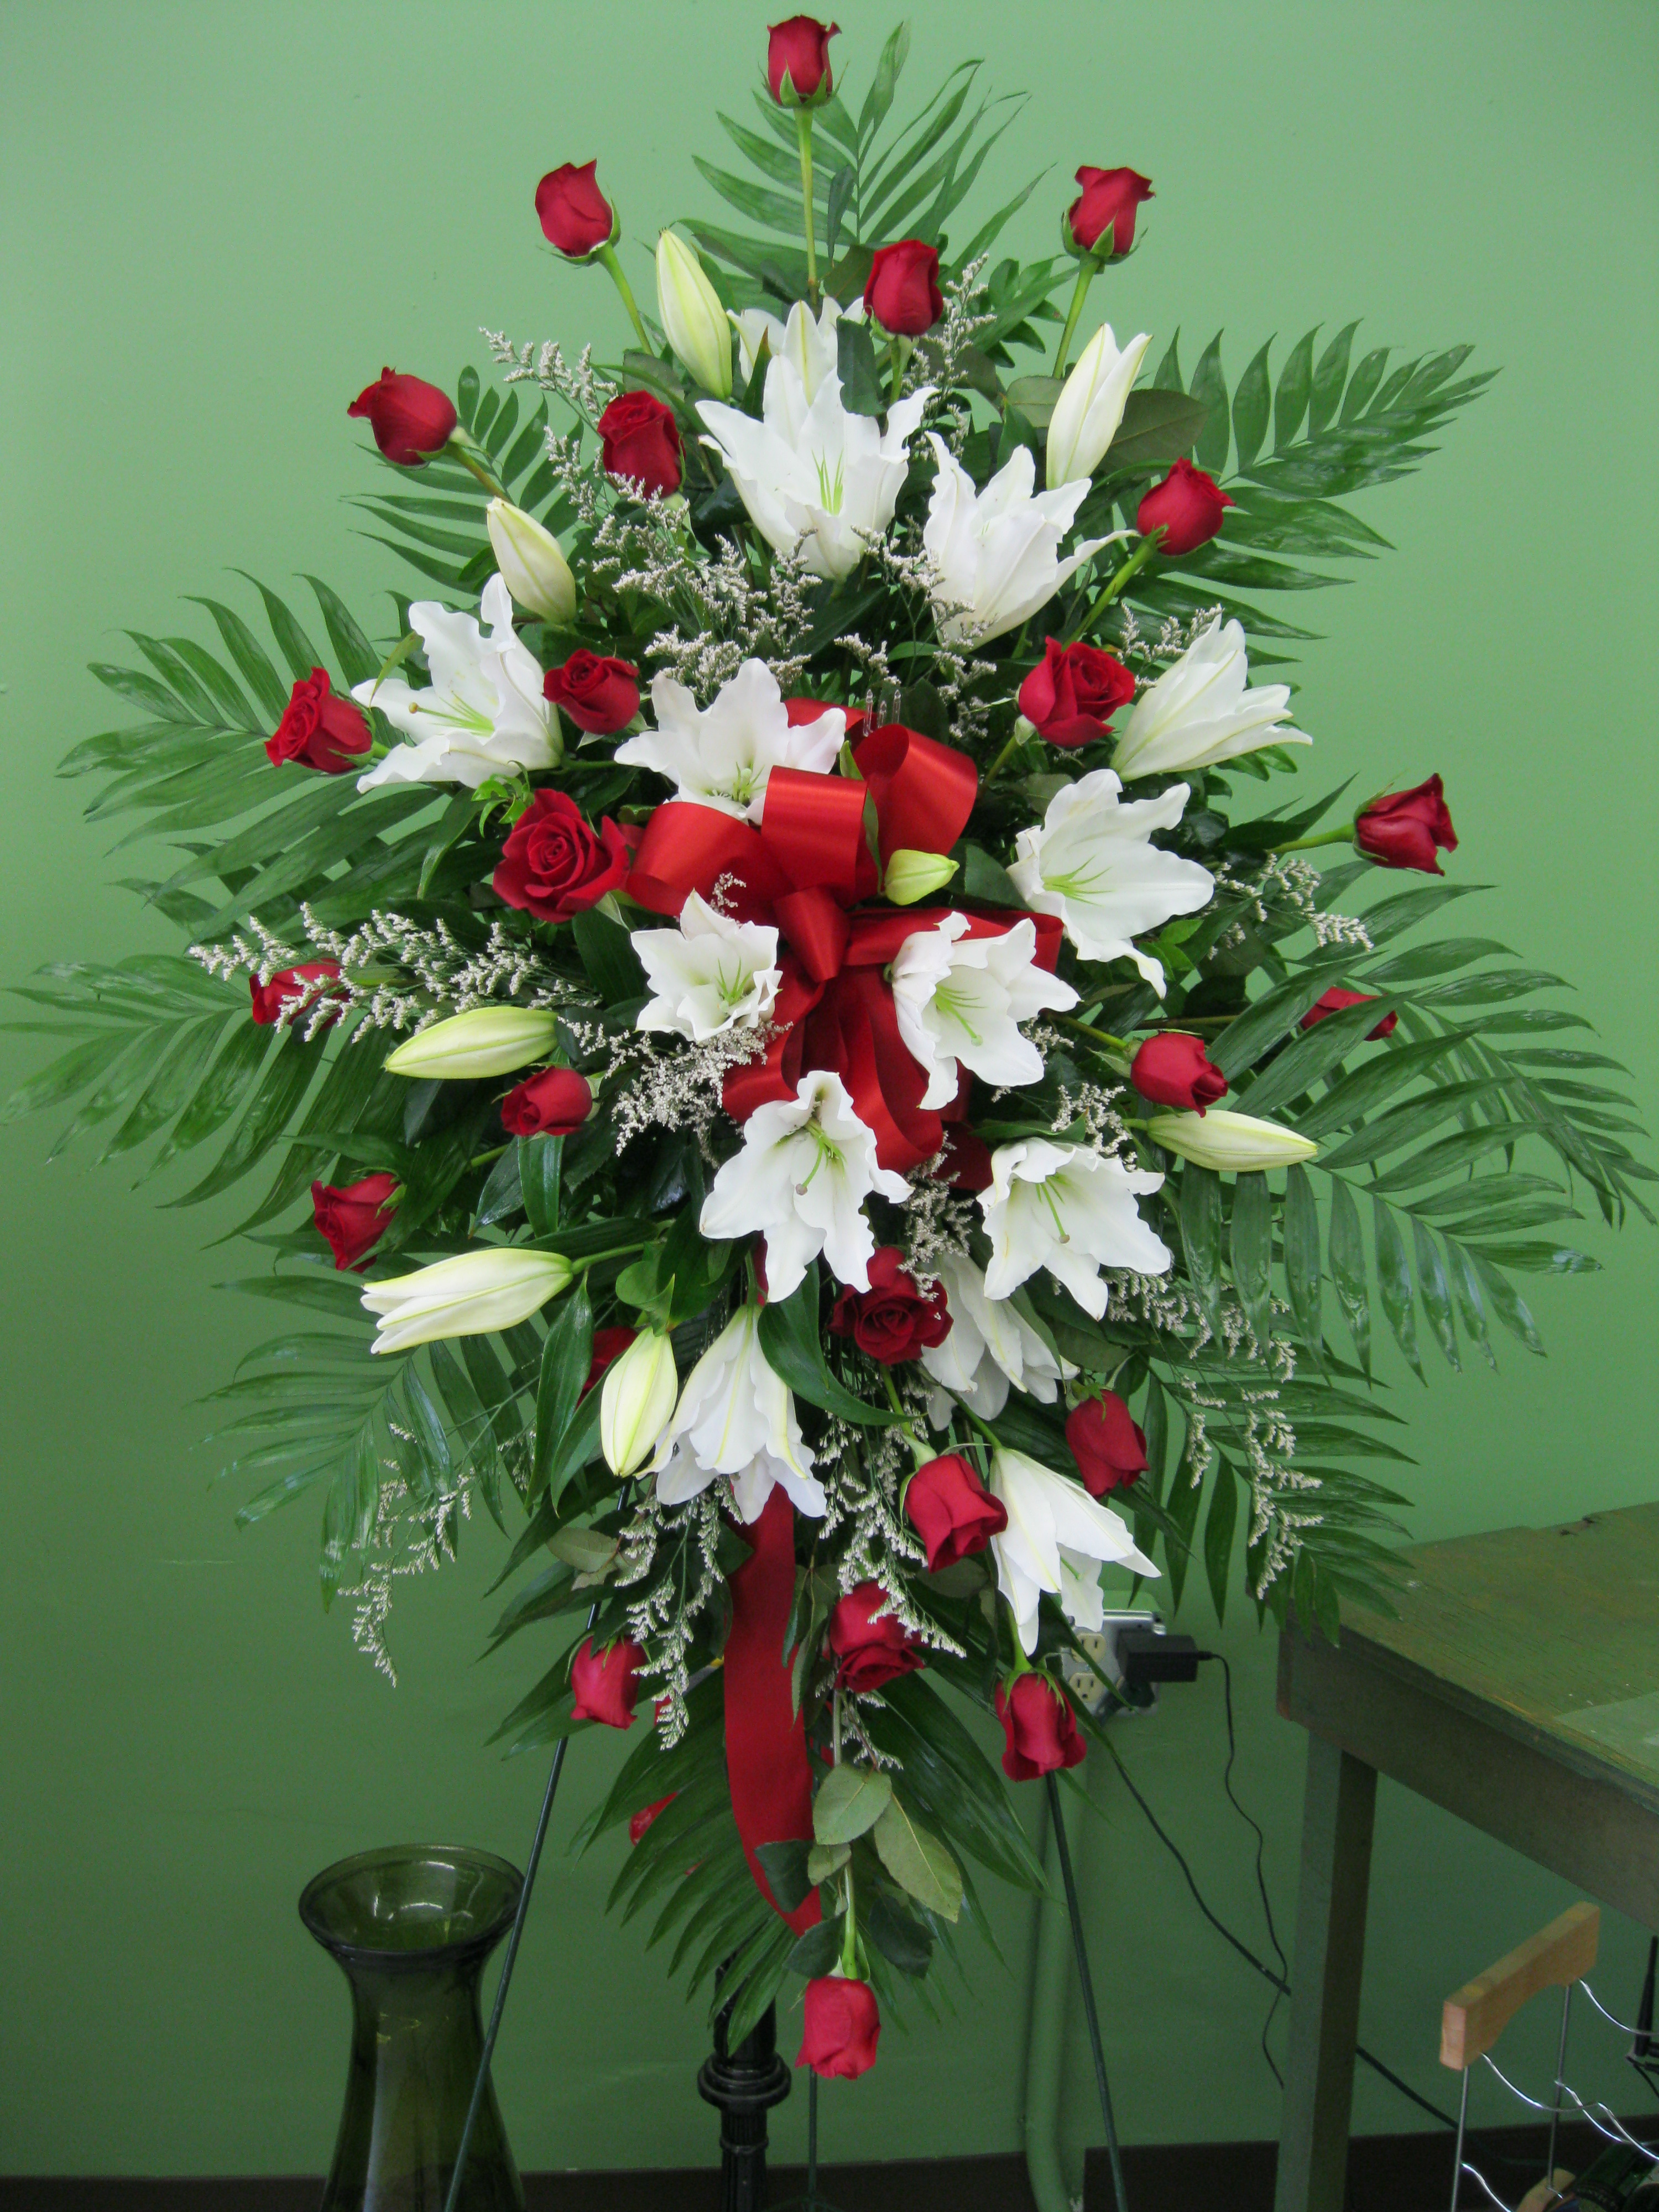 White Lily Amp Red Rose Sympathy Flowerdeliverycavite Com